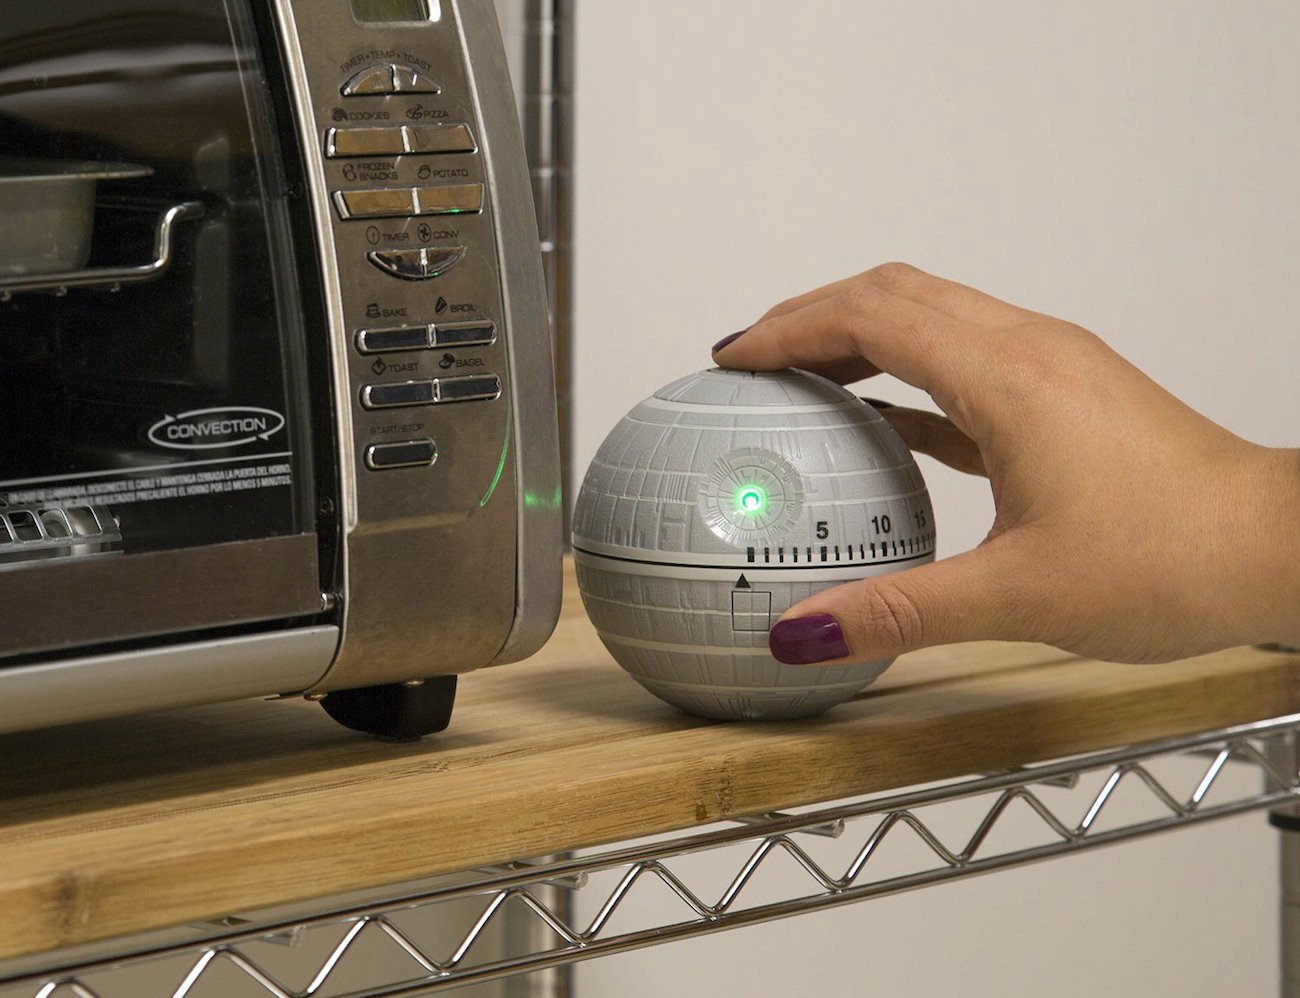 Star Wars Cooking Supplies 9 Star Wars Gadgets To Level Up Your Everyday Life